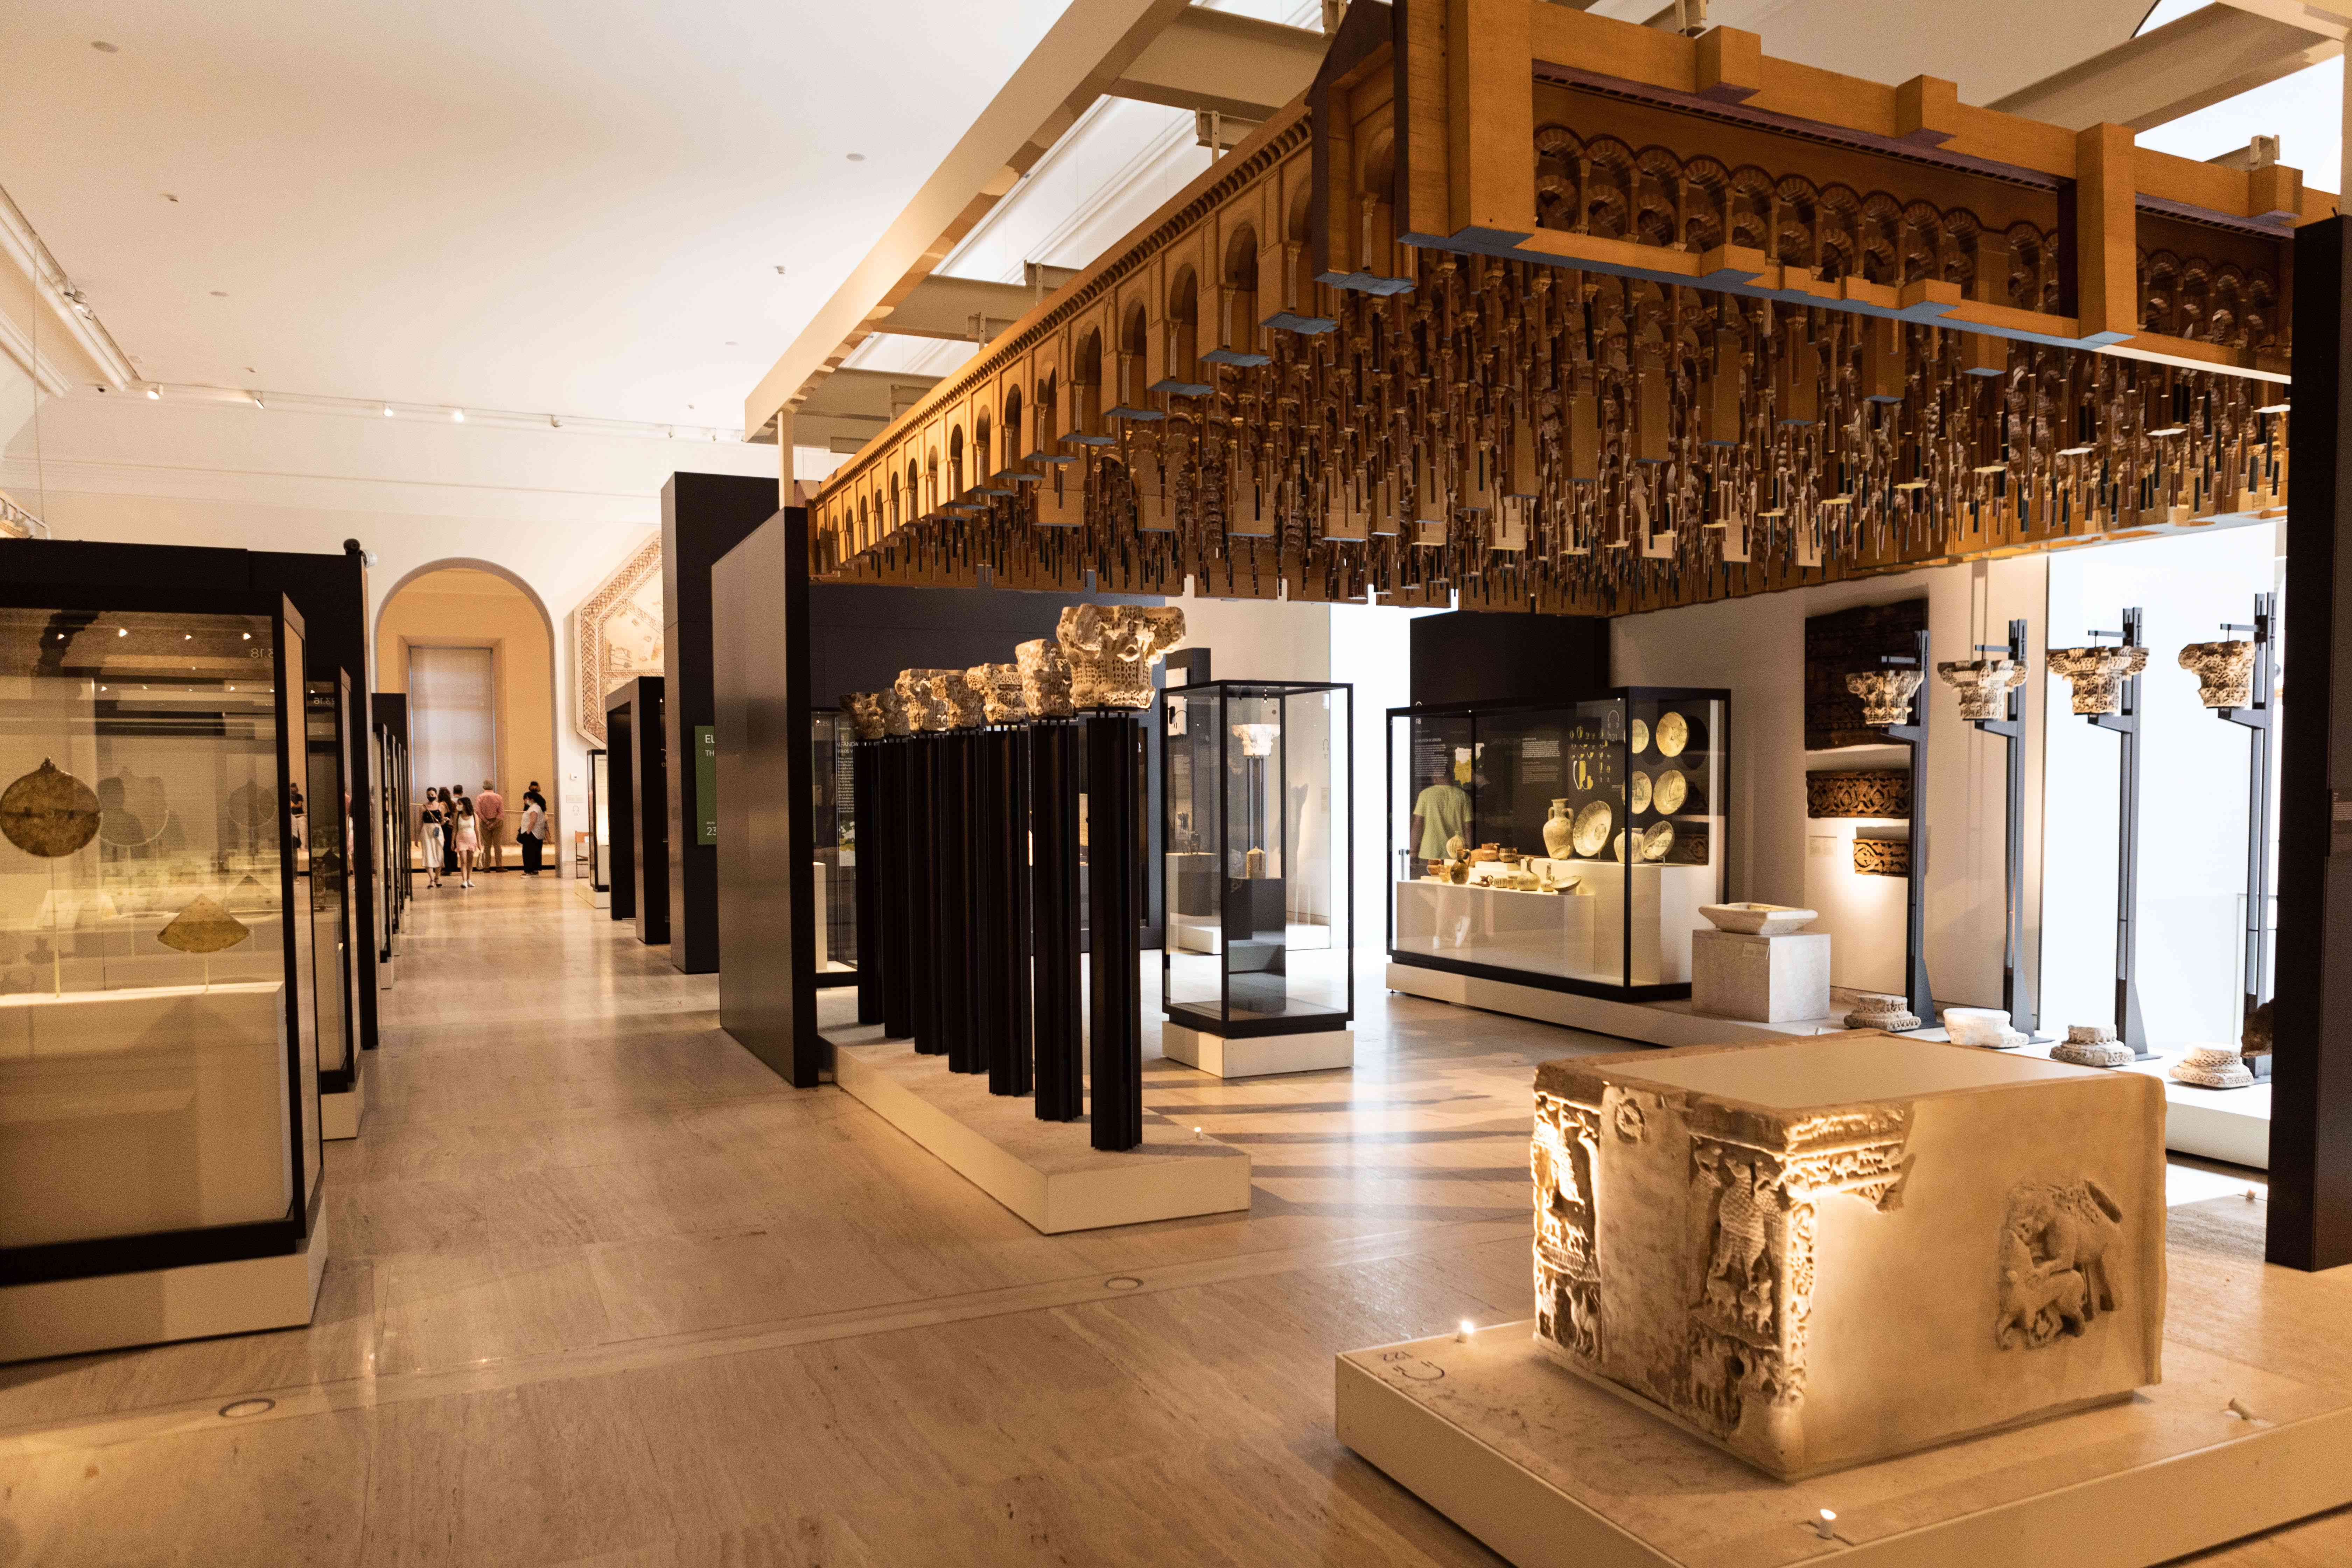 National Archaeological Museum in Madrid